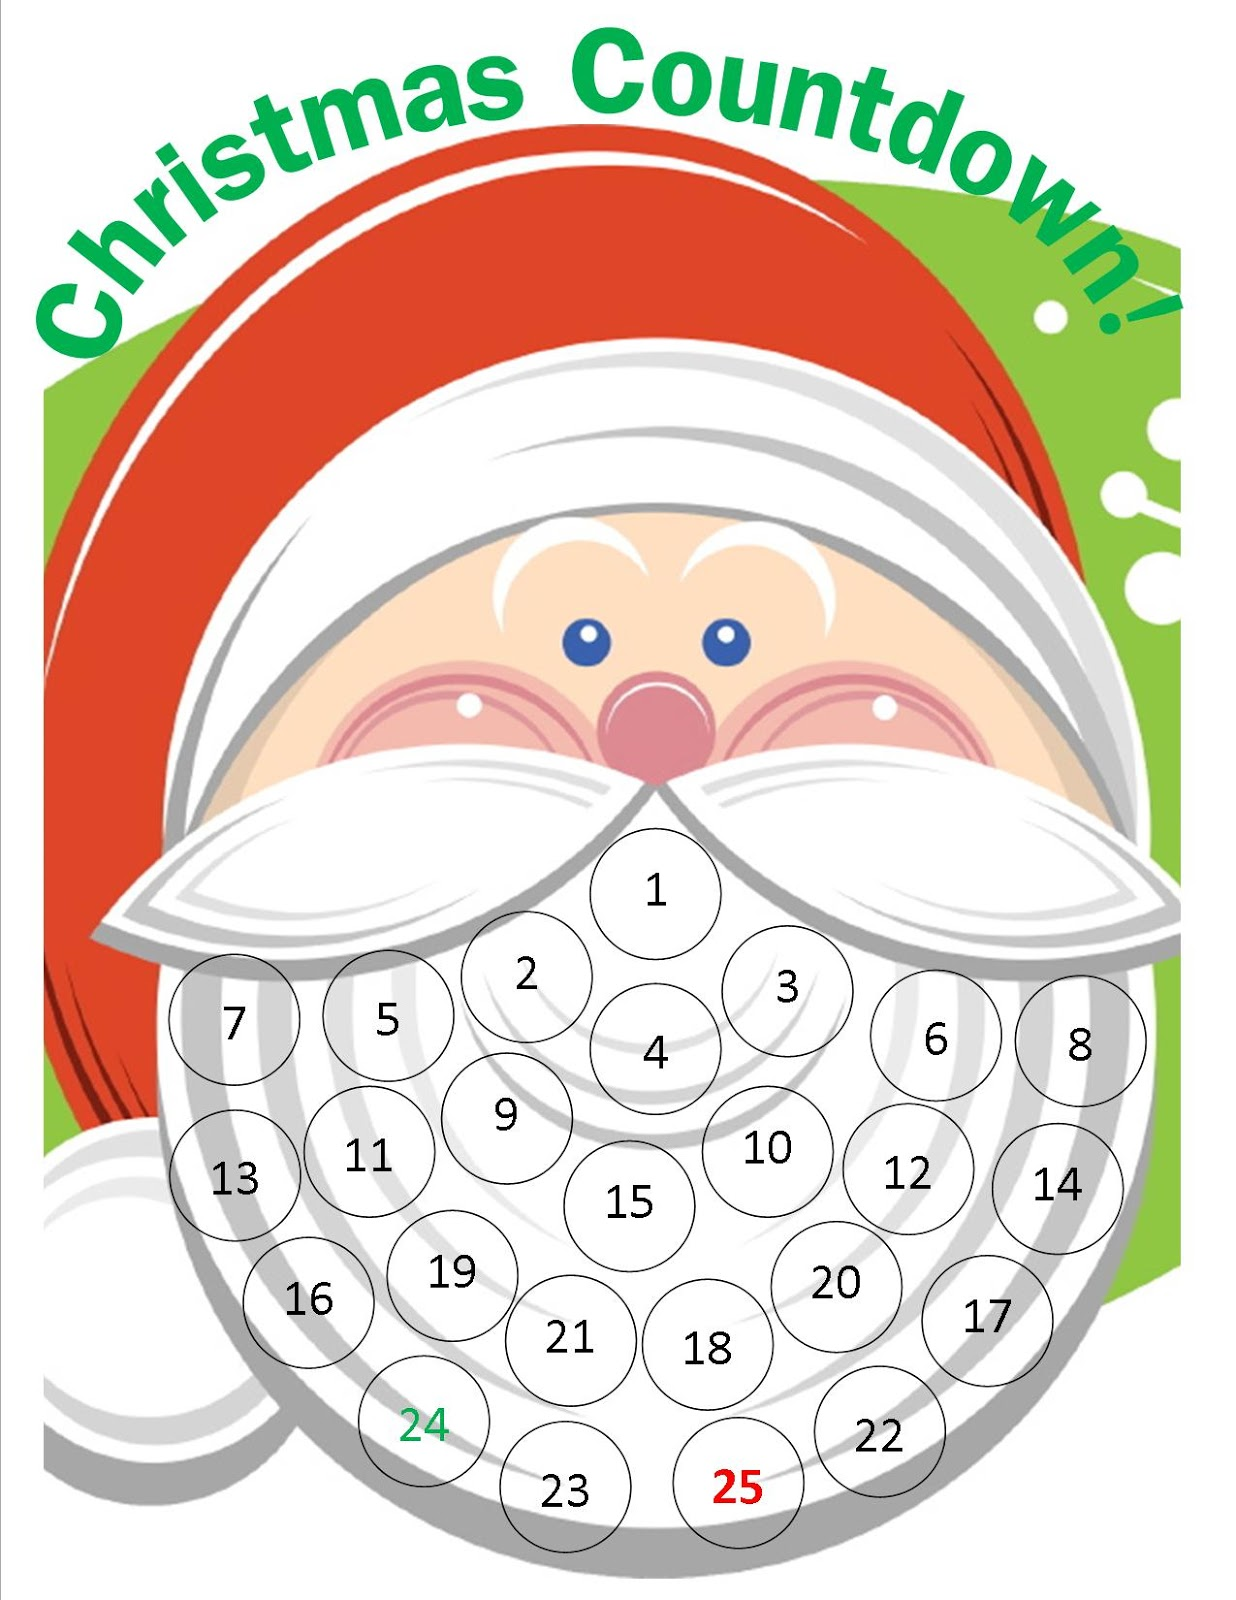 Free christmas countdown clipart graphic freeuse download Crafty WI Mama: Santa Christmas Countdown {Free Printable} graphic freeuse download